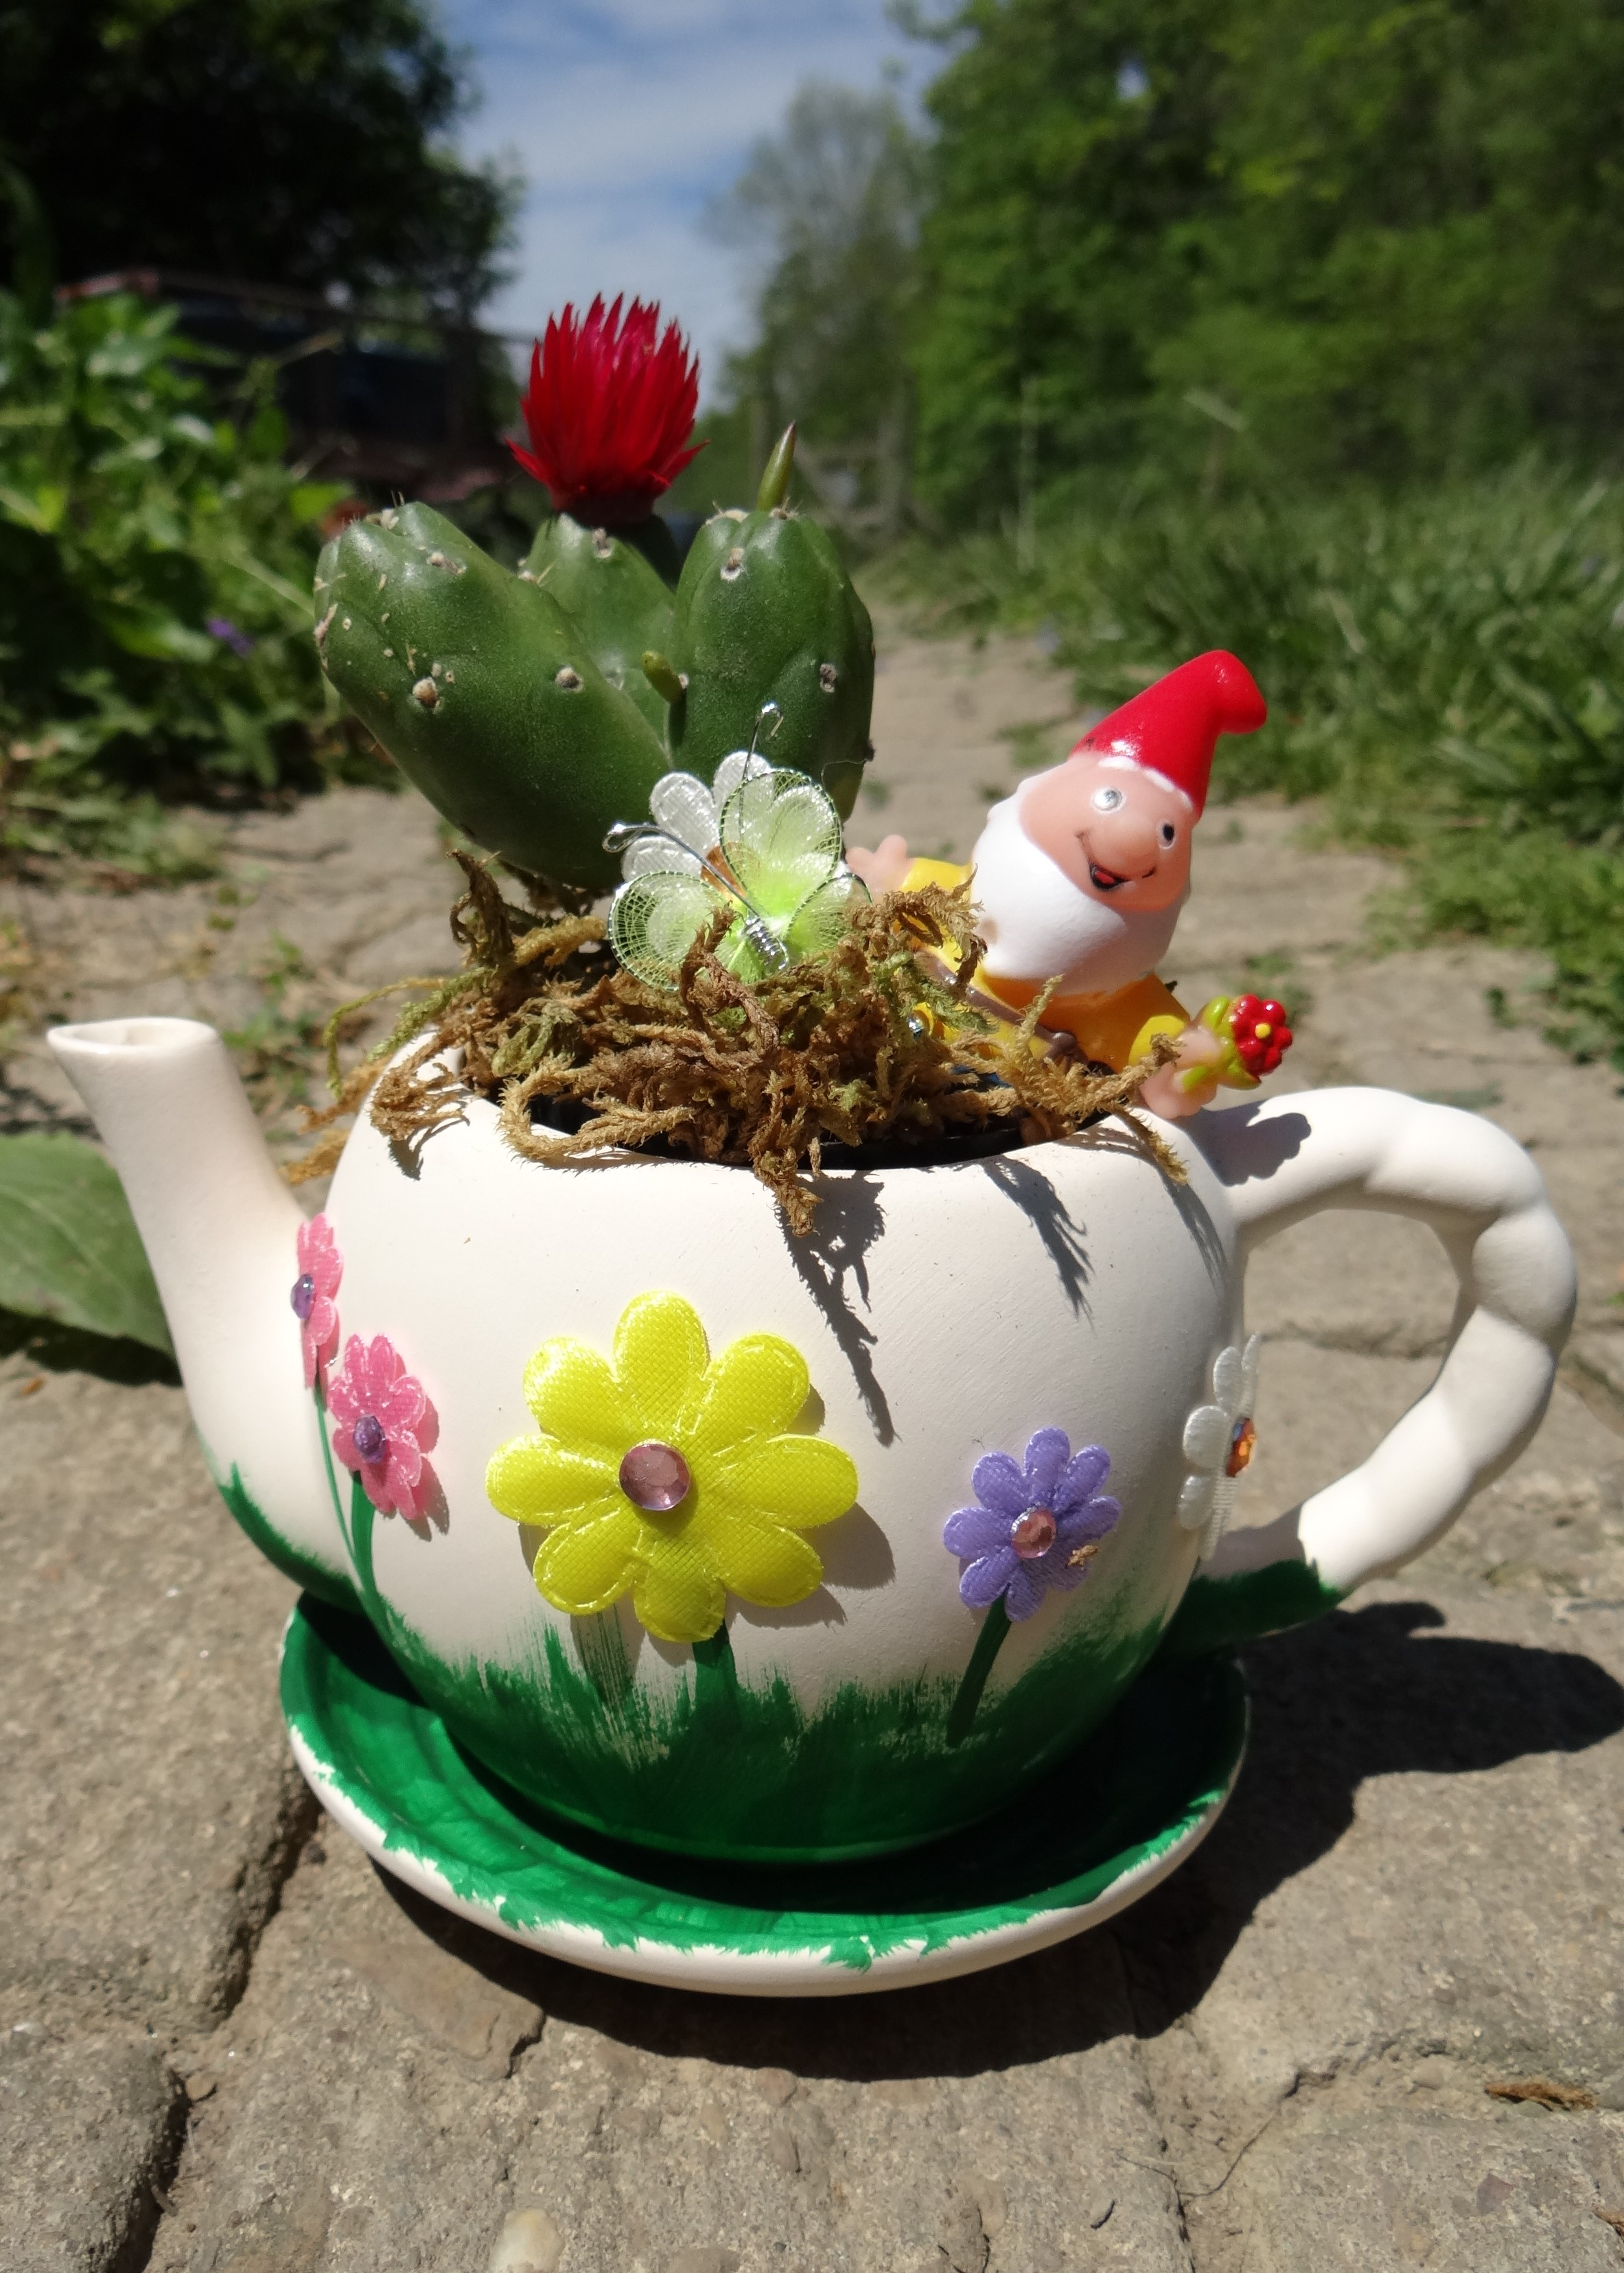 Catchy A Diy Fairy Garden Tea Read On Diy Fairy Garden Tea Pot Oriental Sharing Tips Forcreating A Garden Tea Party Garden Party Ideas Rural Mom Thanks To Our Partnership garden Diy Fairy Garden